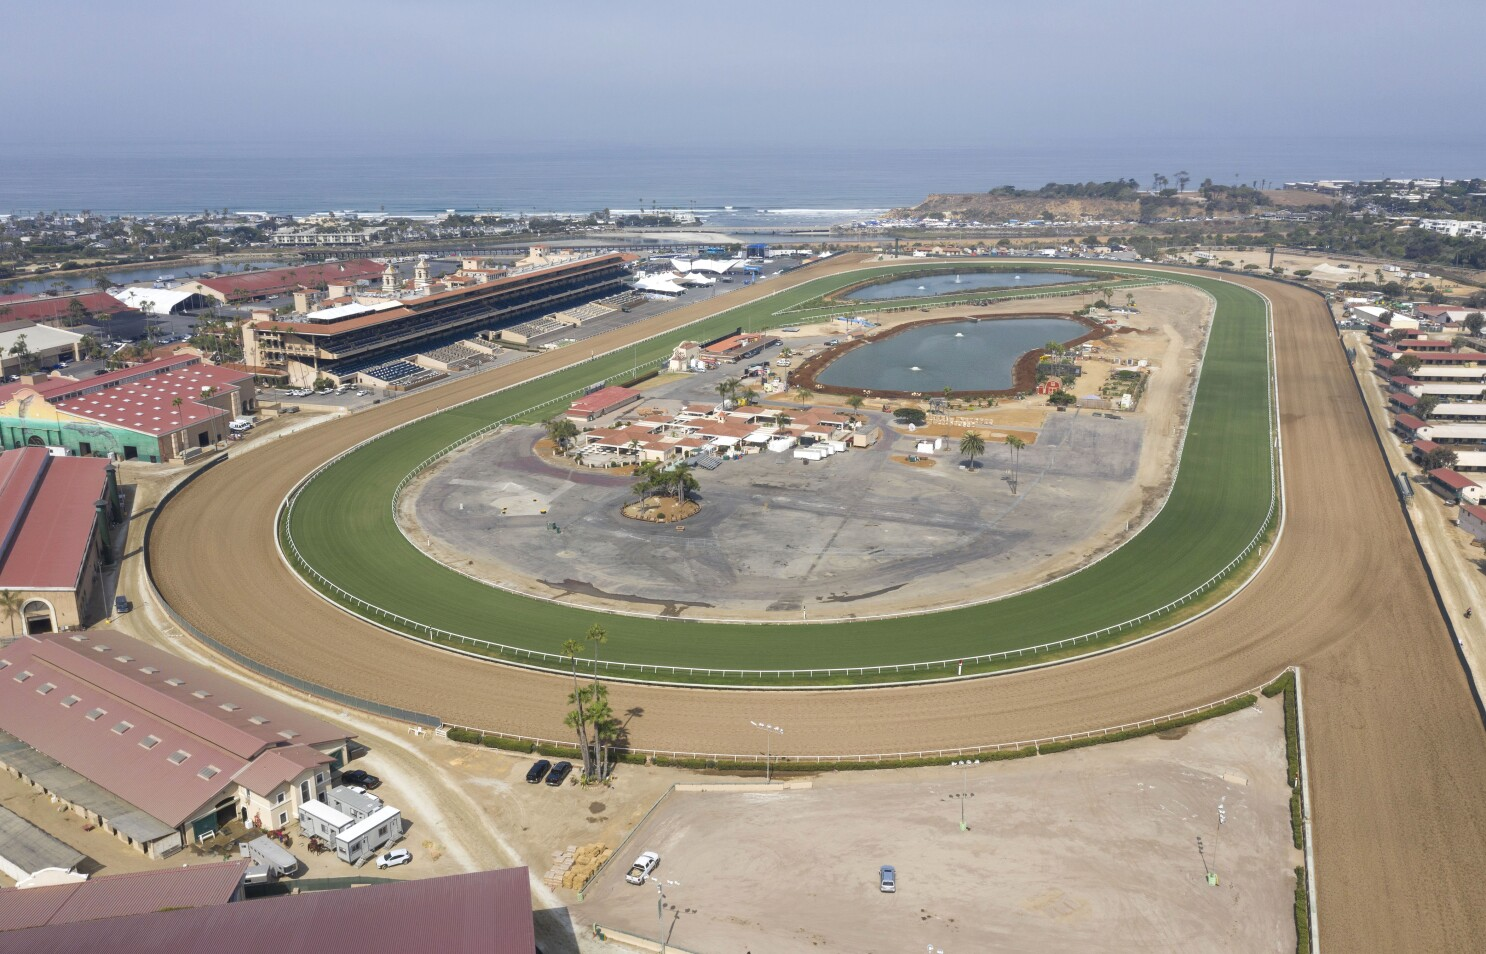 Del Mar racetrack suffers first two racing fatalities of 2019